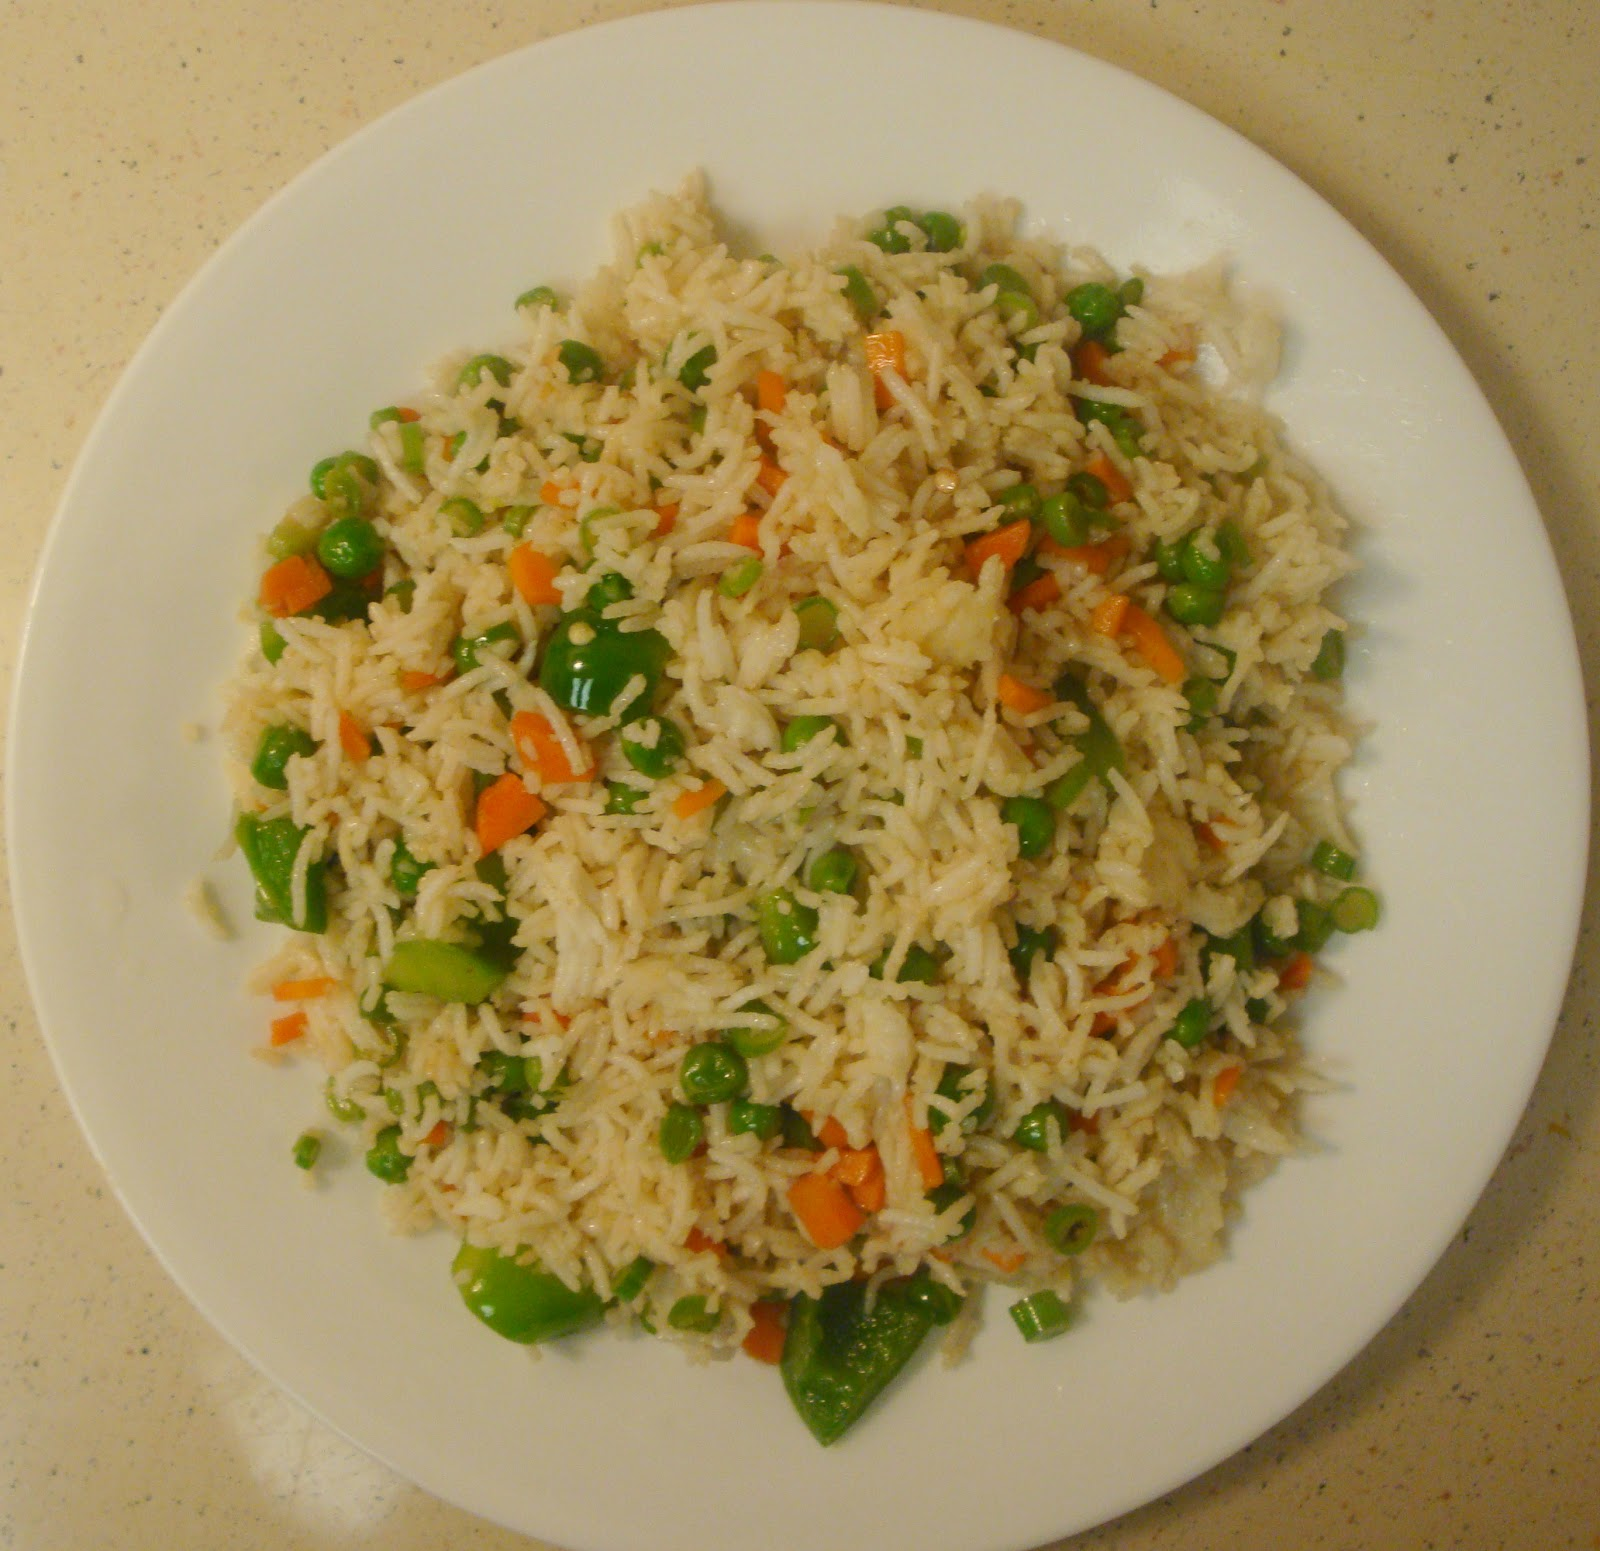 Indian Recipes: Vegetable Fried Rice